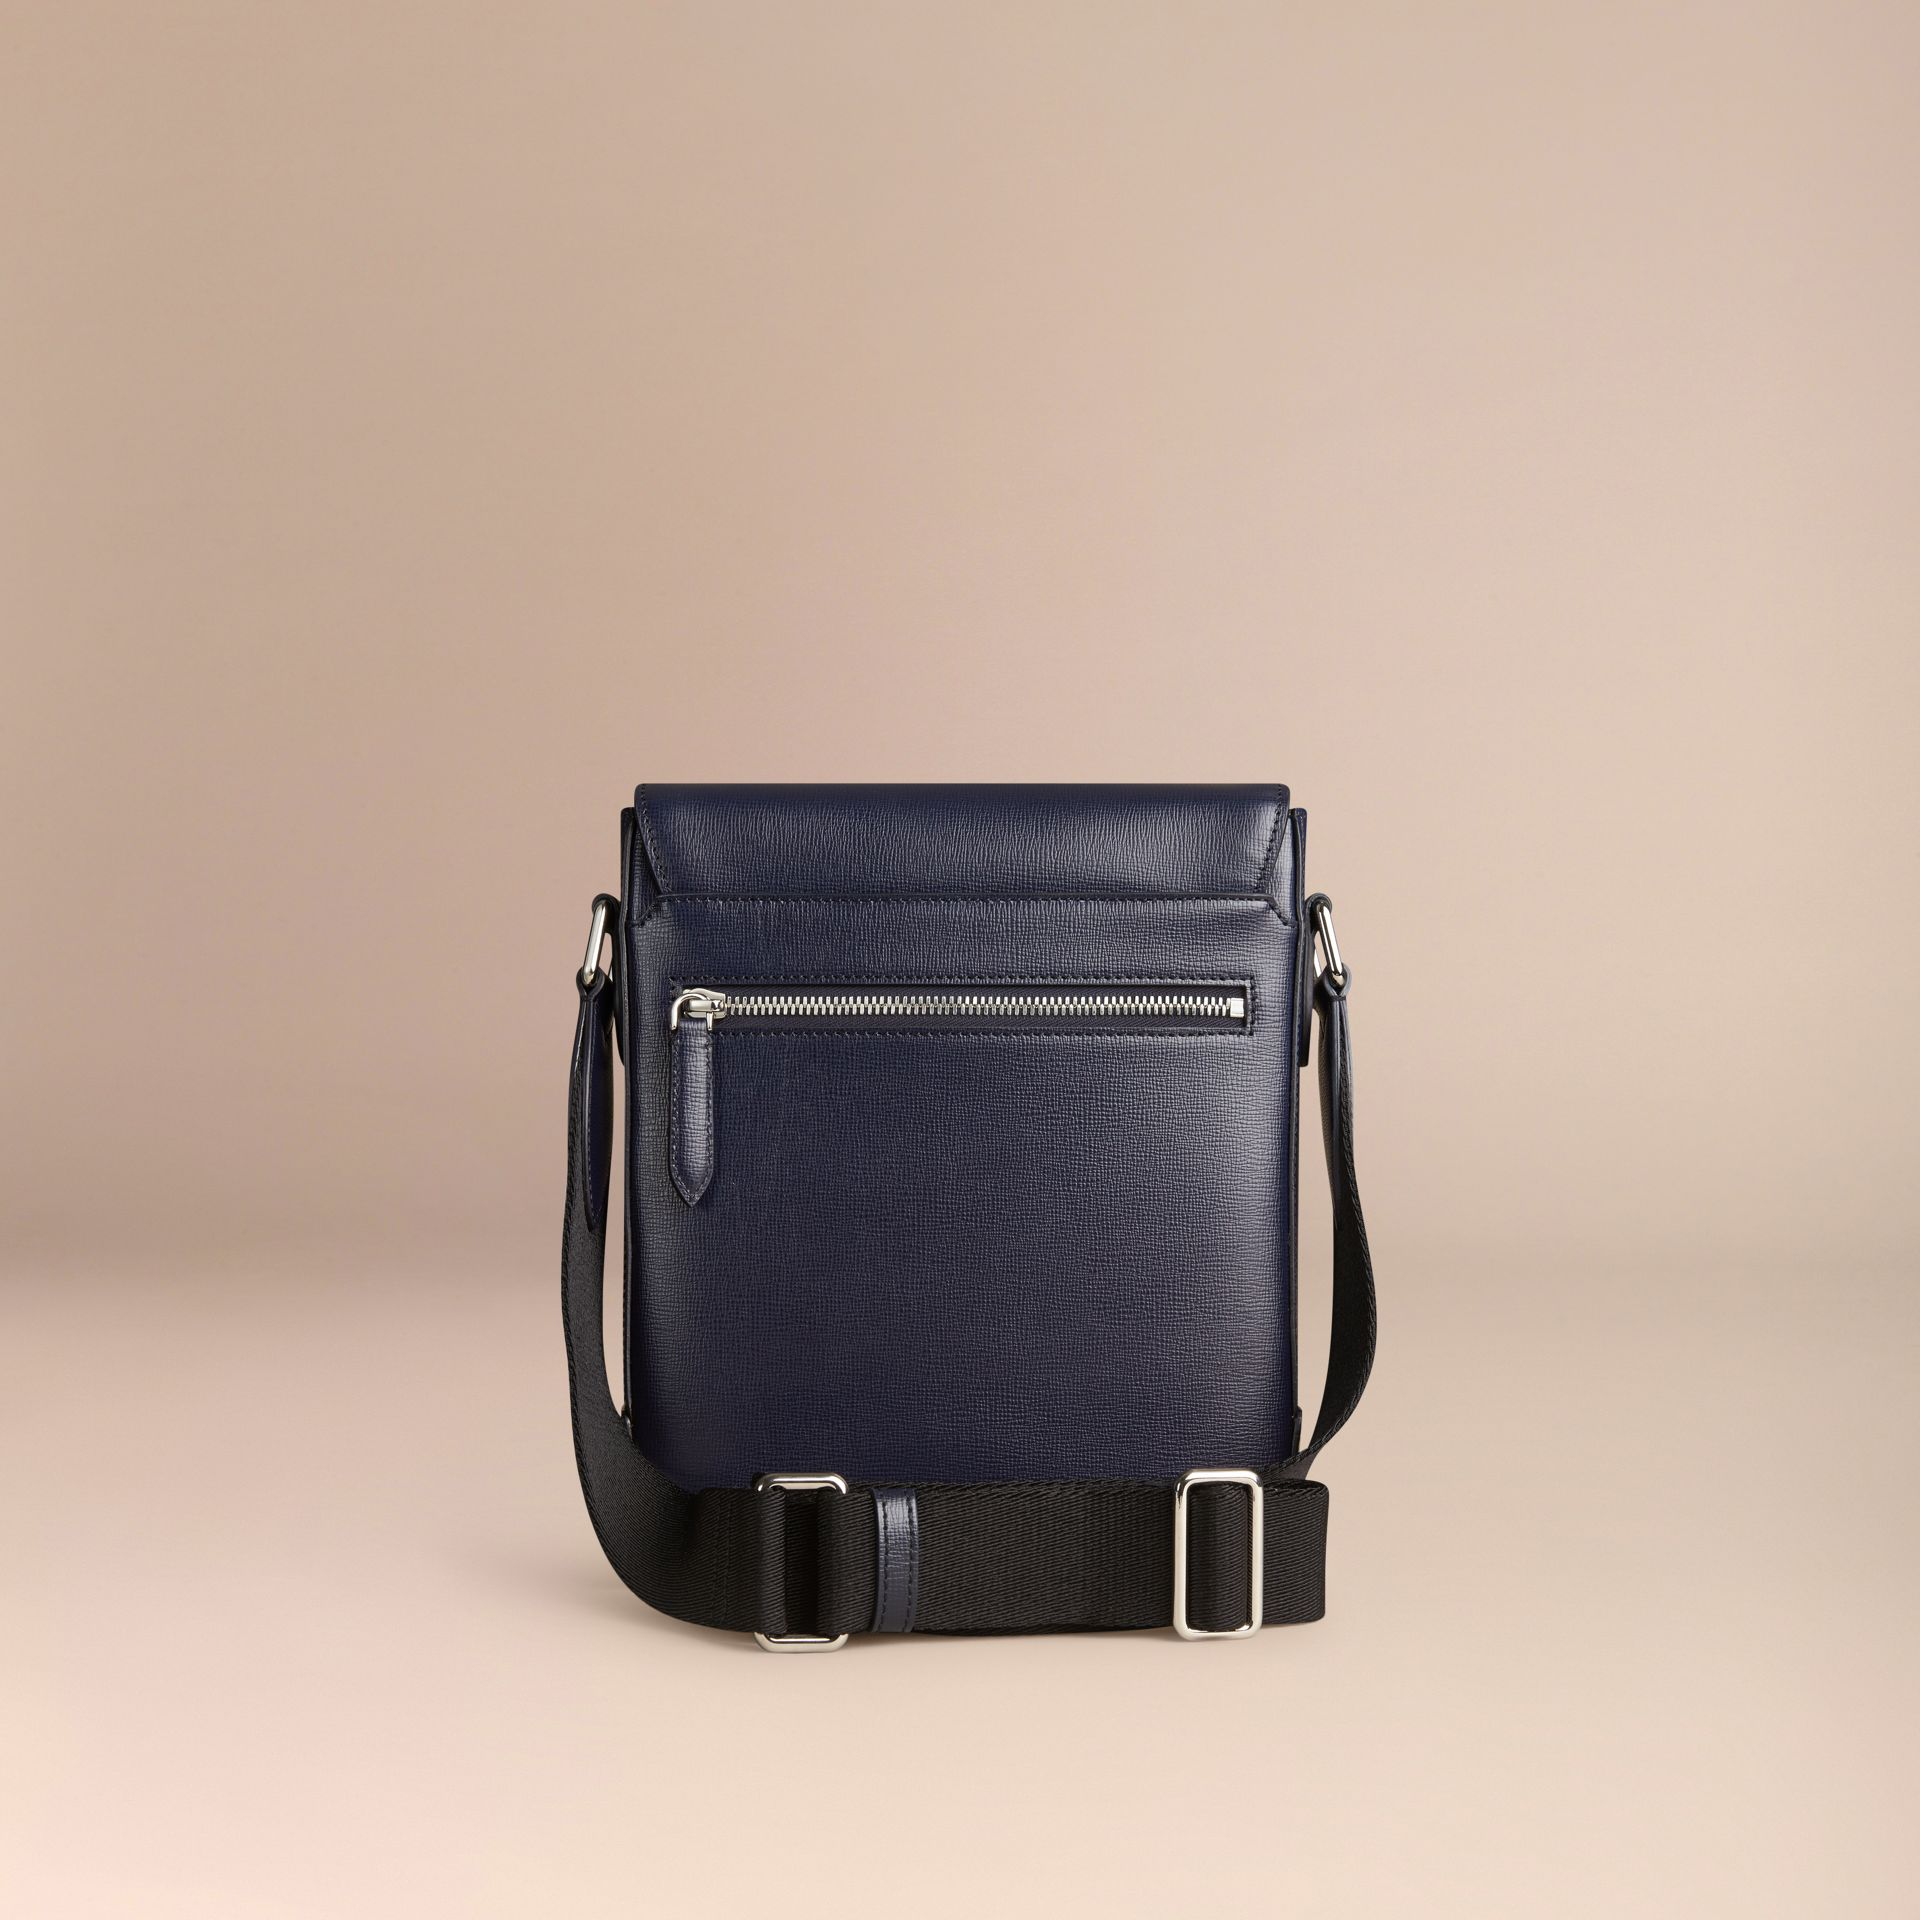 Navy scuro Borsa a tracolla in pelle London Navy Scuro - immagine della galleria 4